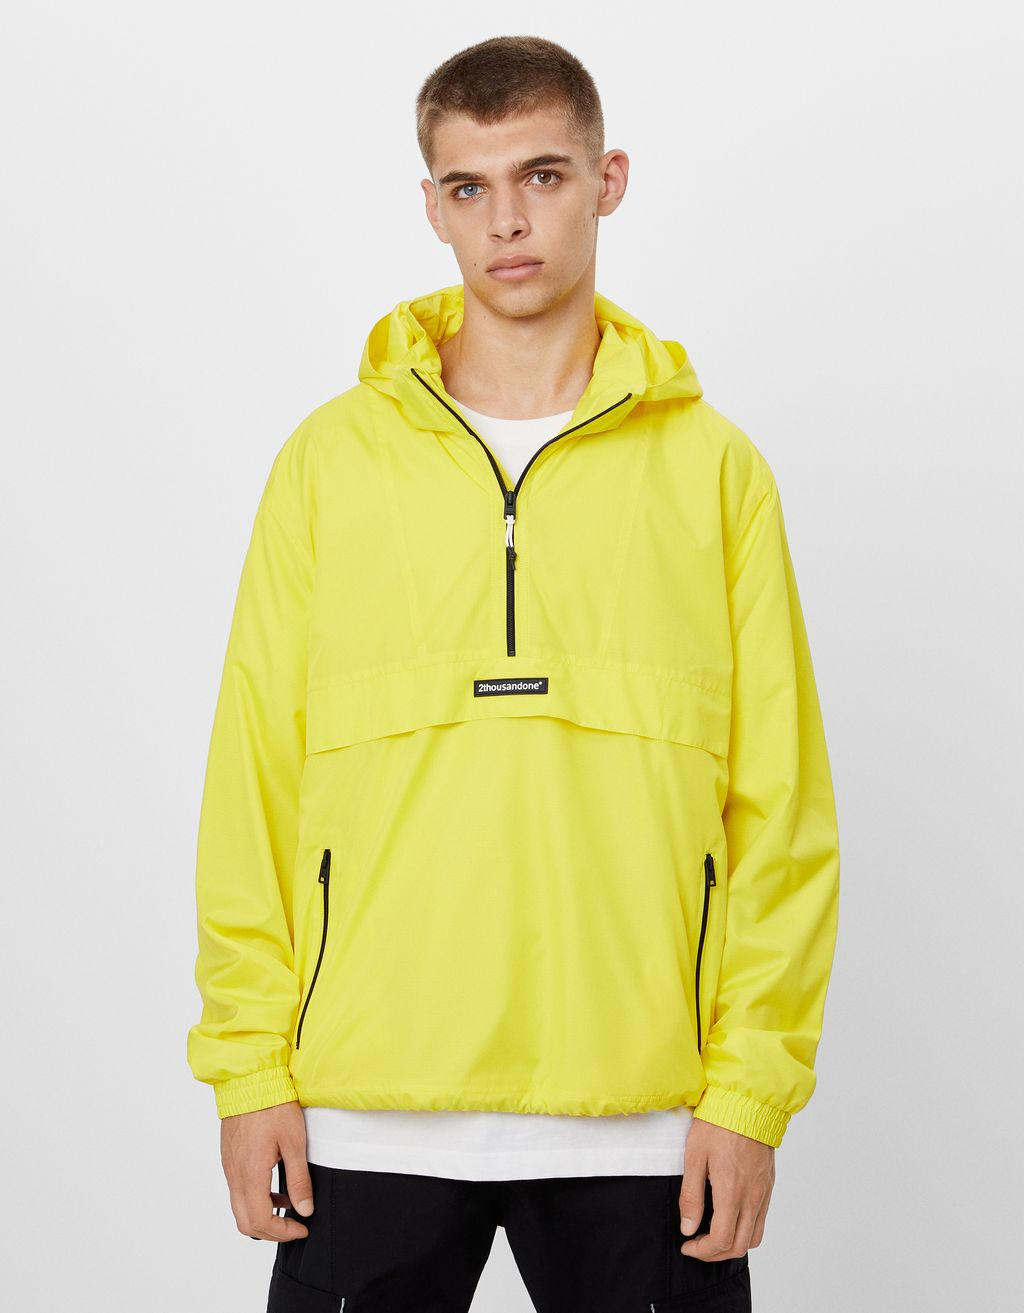 Anorak jacket with detachable hood